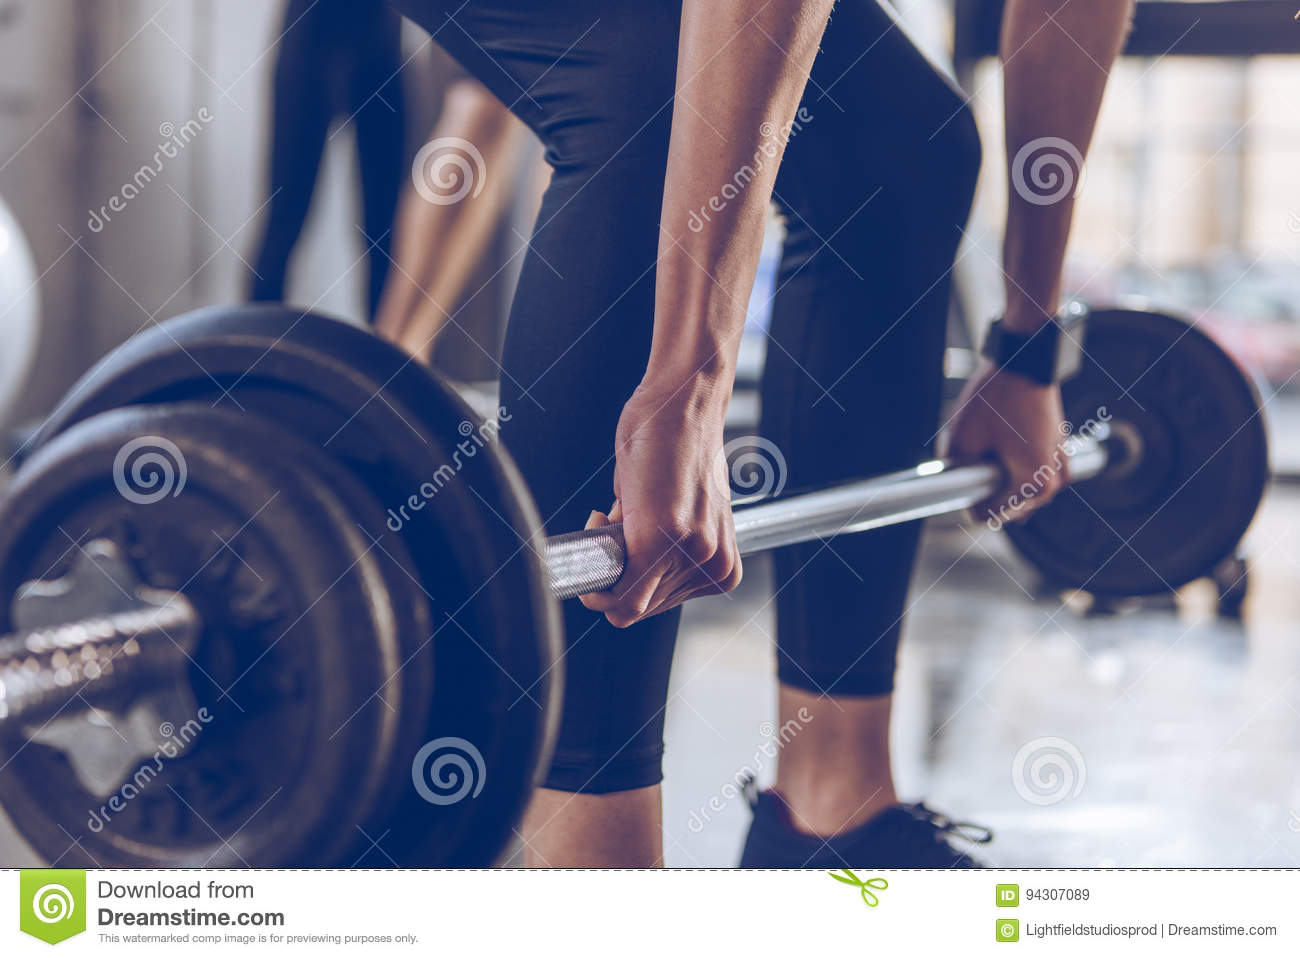 Sportswoman lifting barbell at gym workout